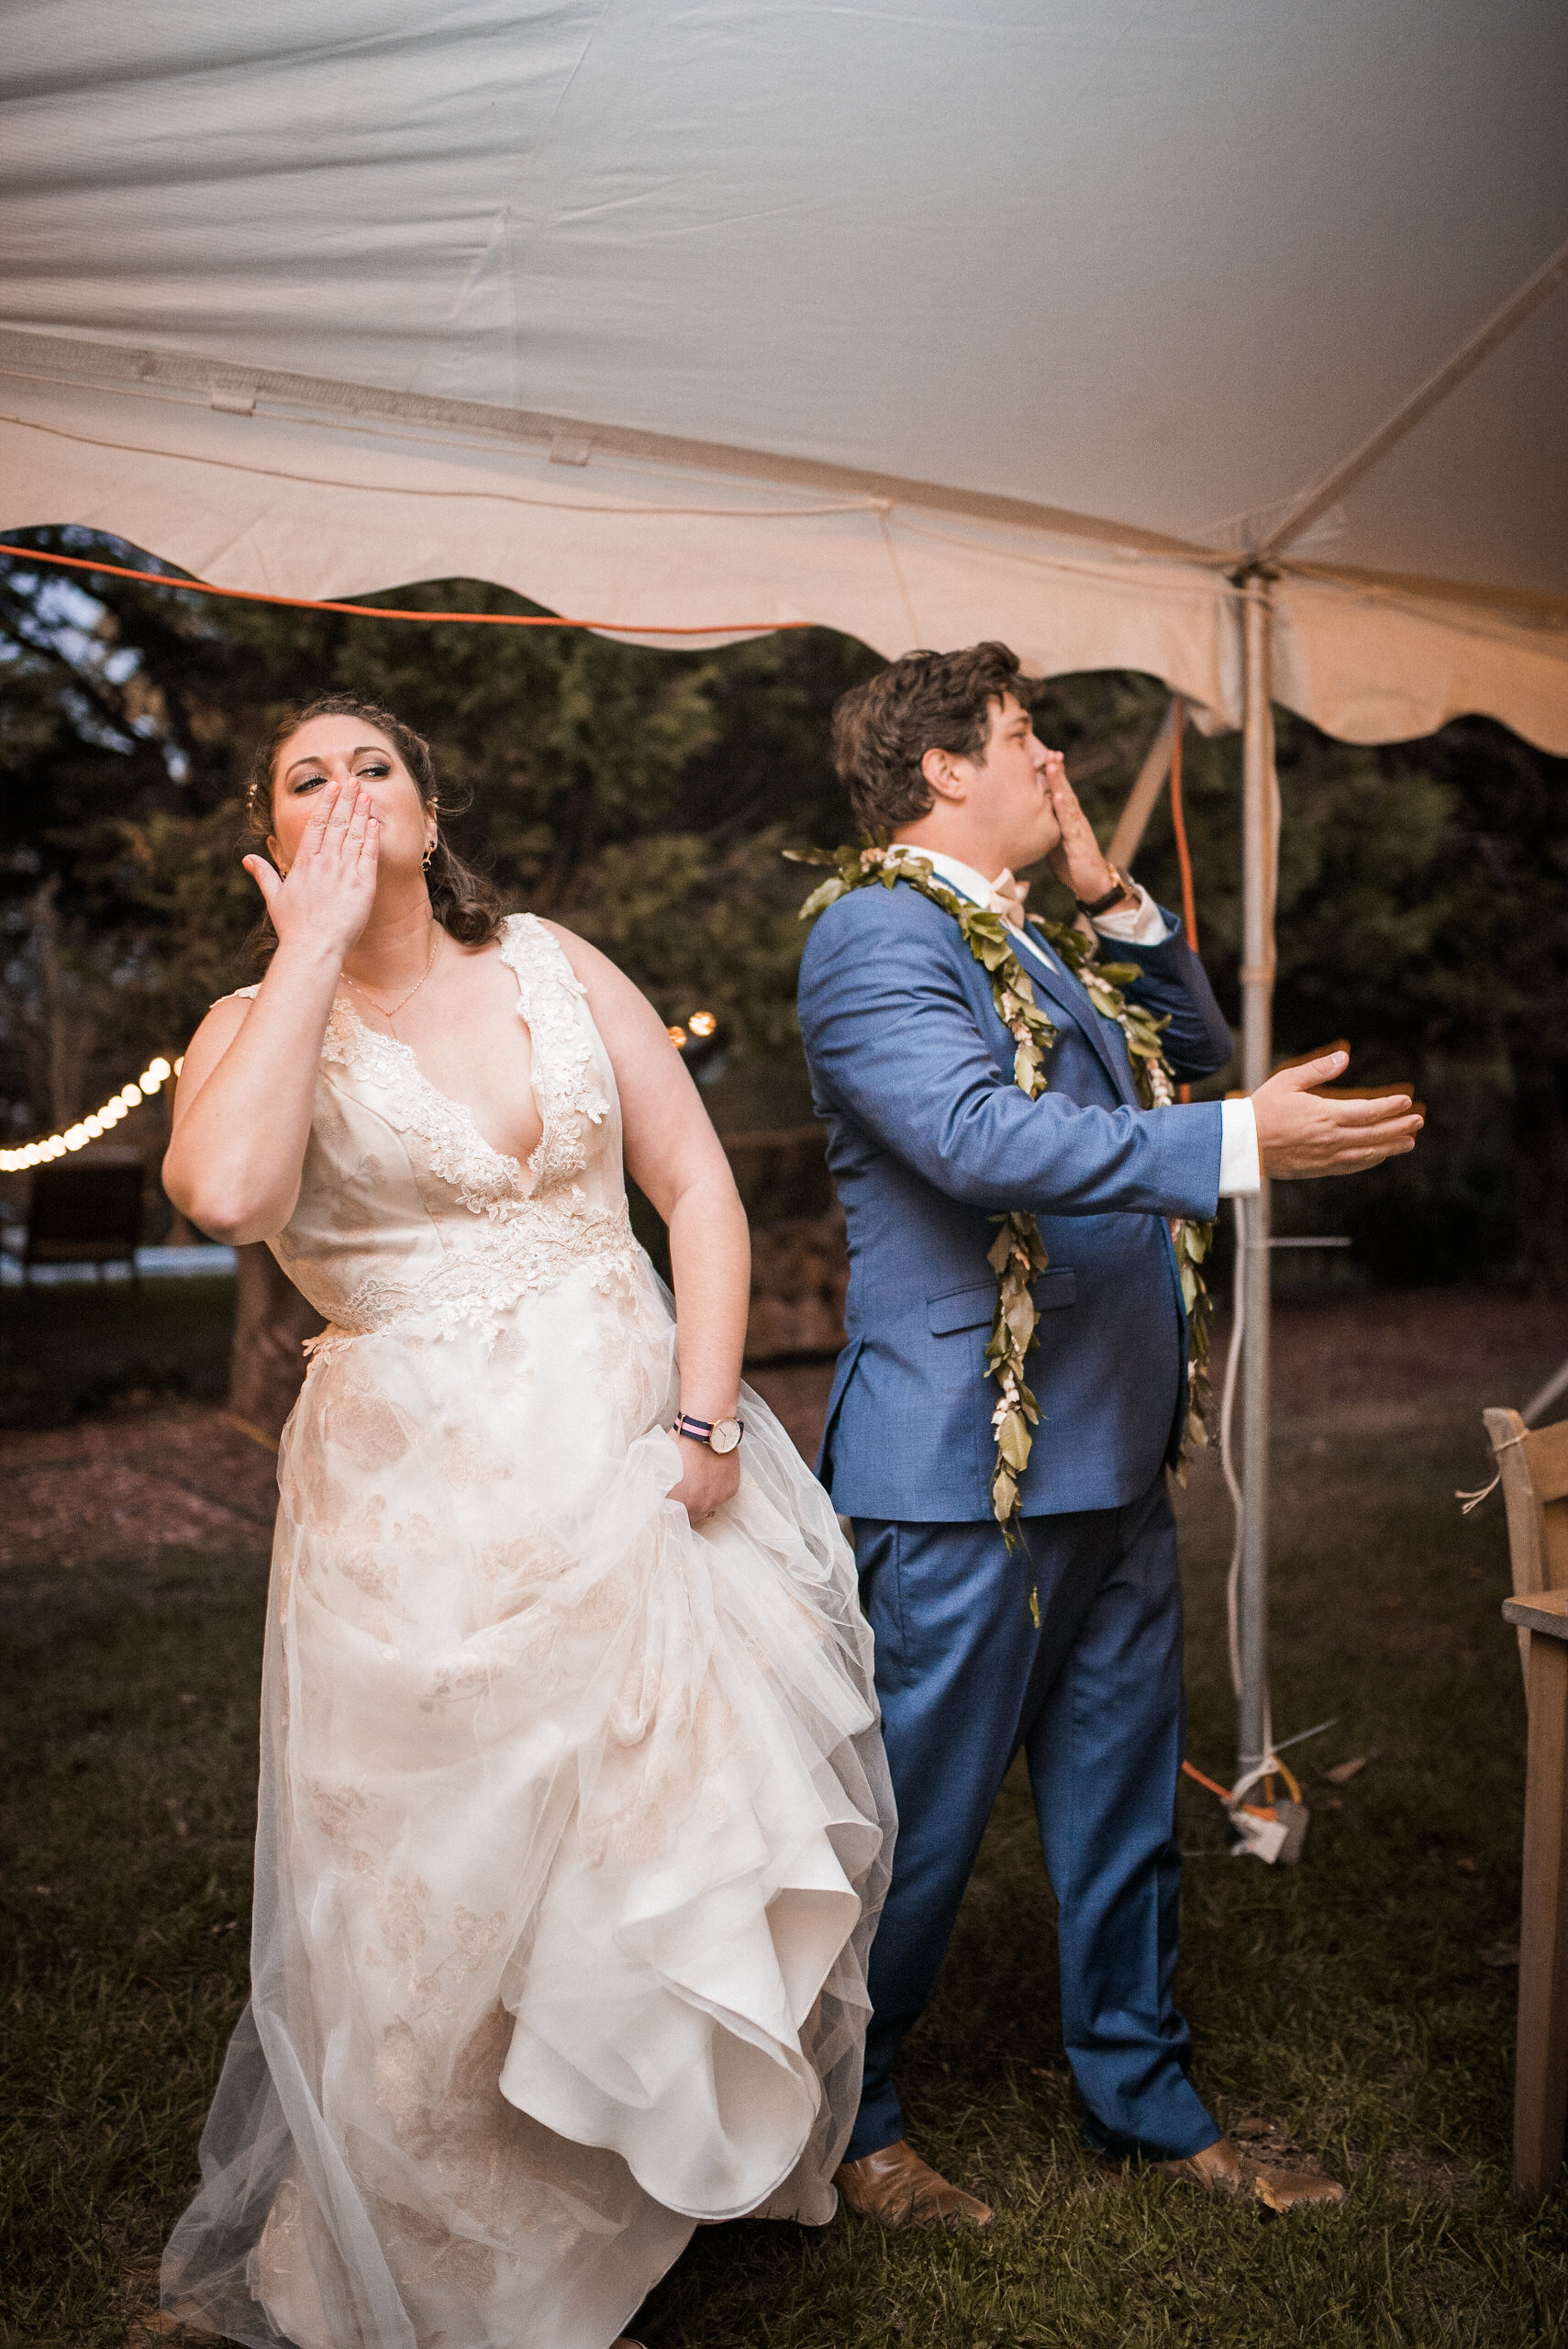 Bride and groom blowing kisses